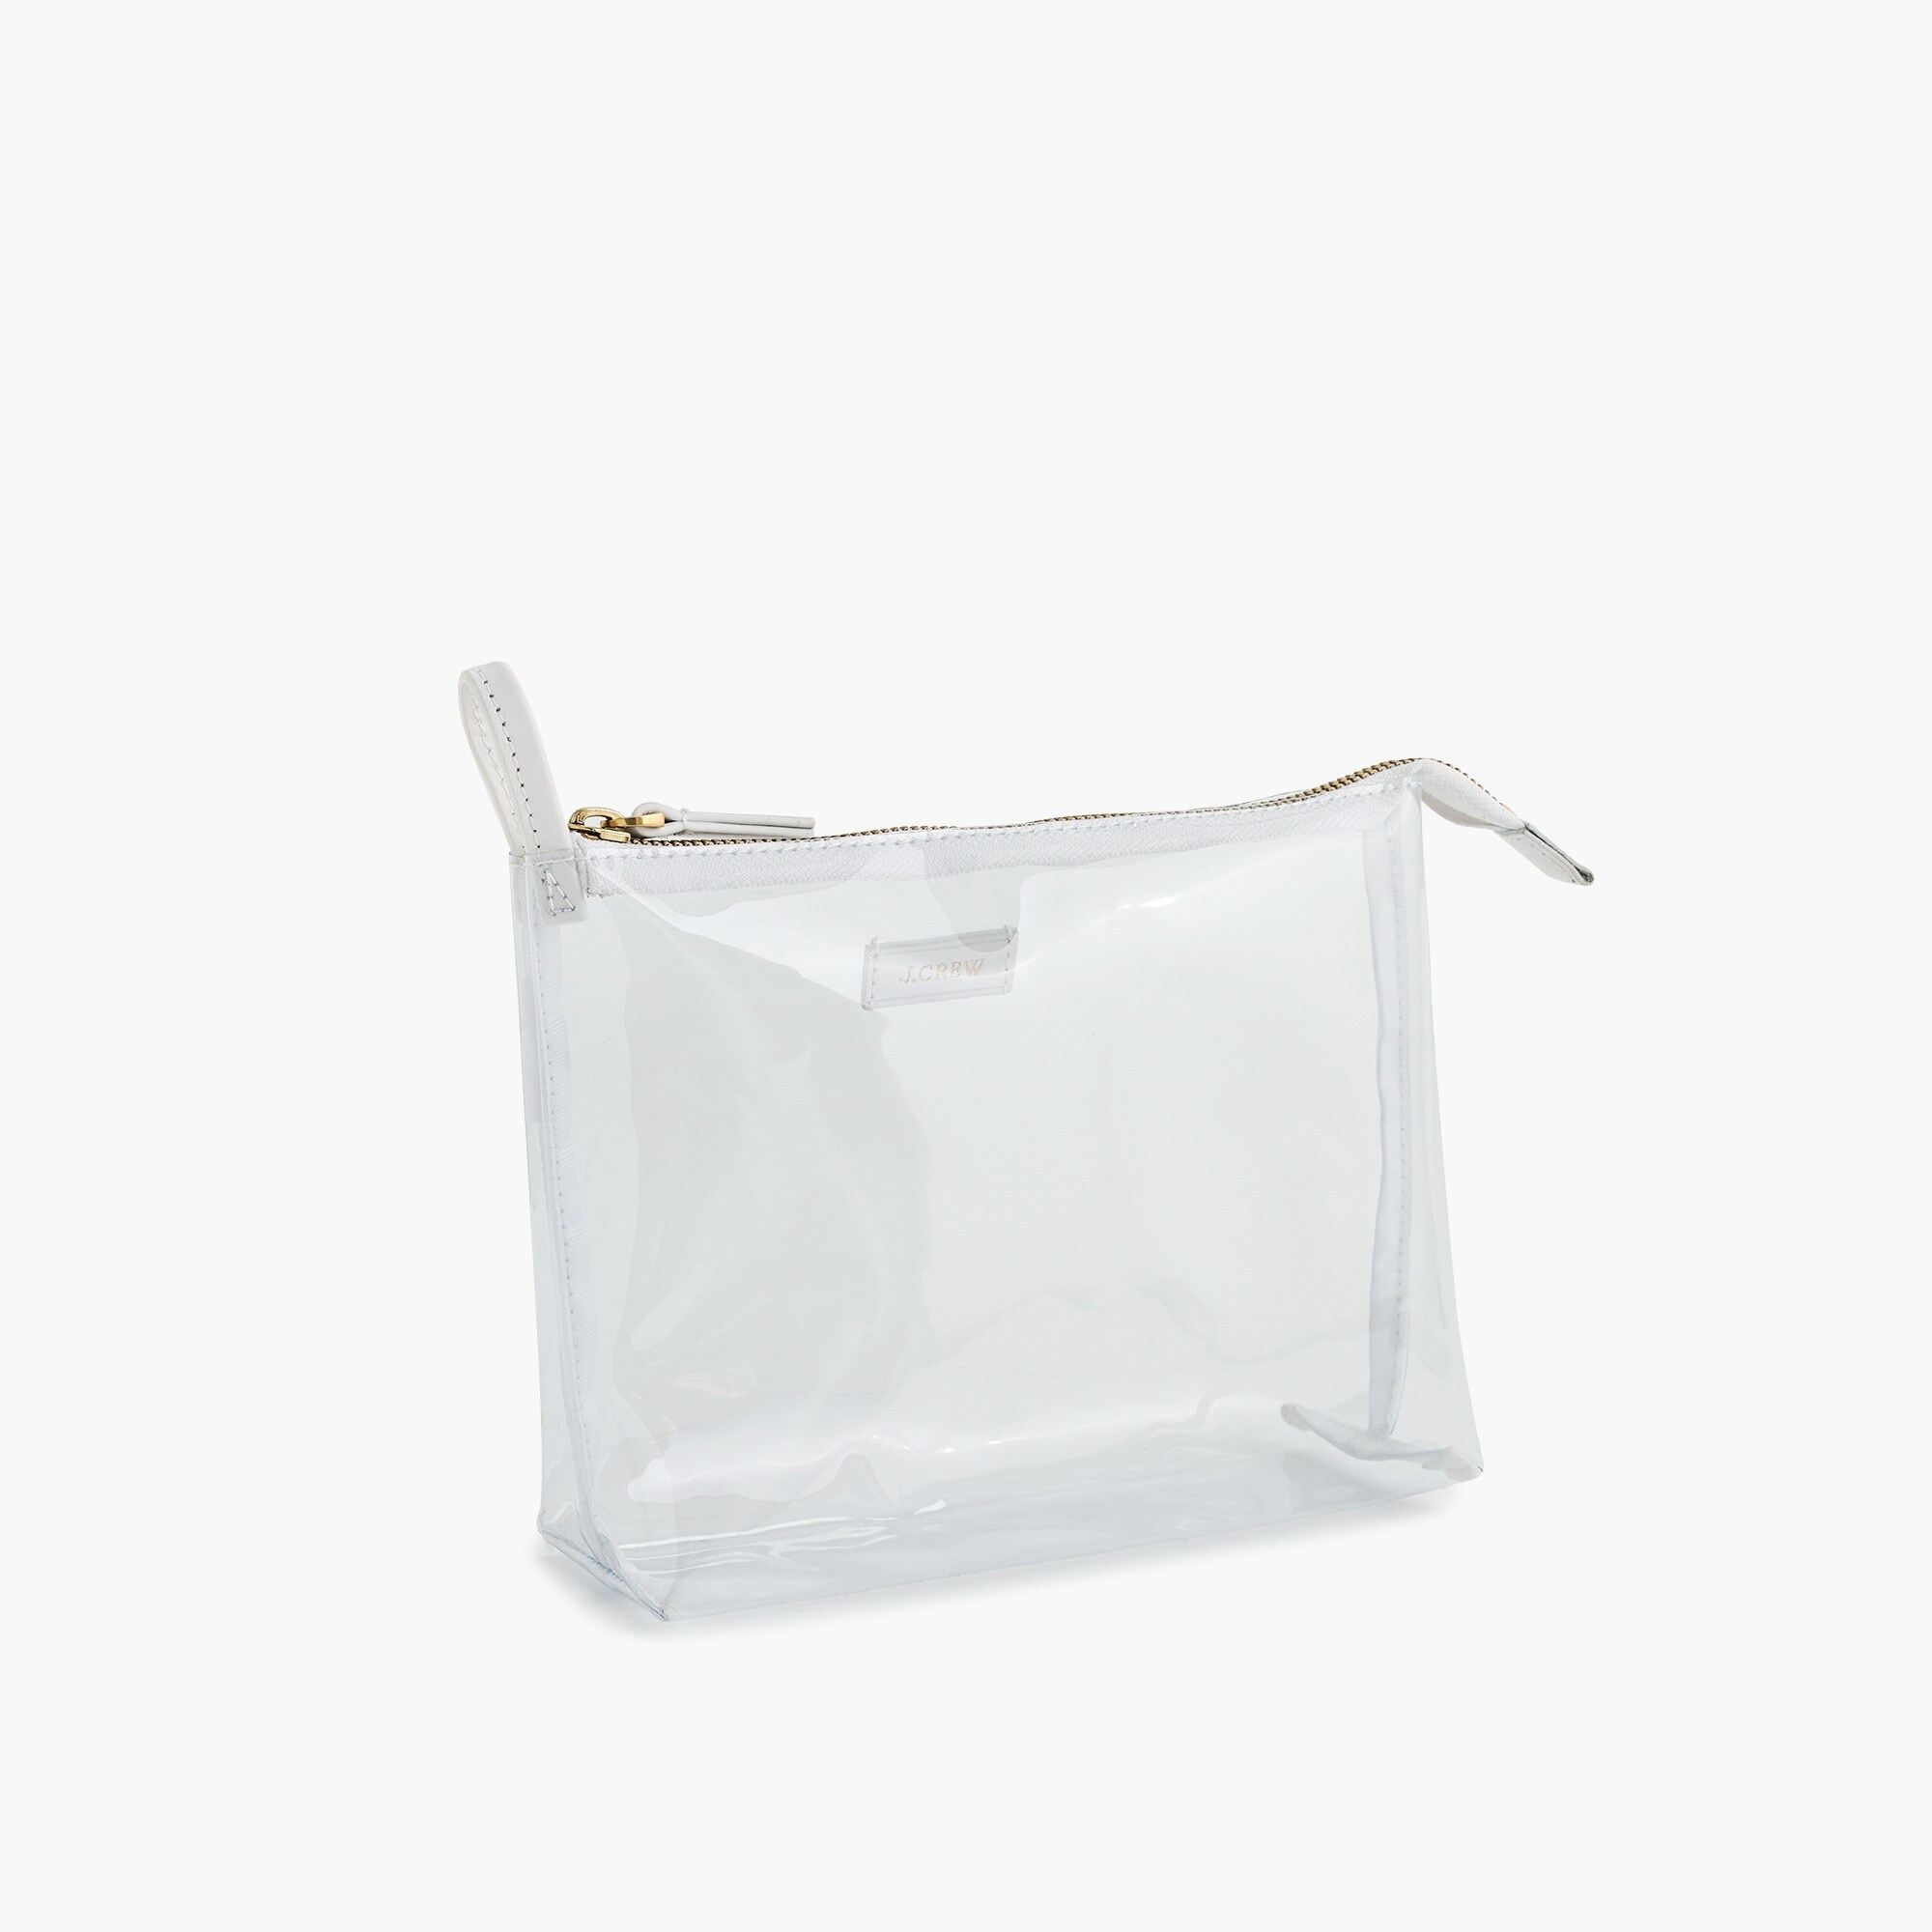 women's clear makeup pouch - women's bags